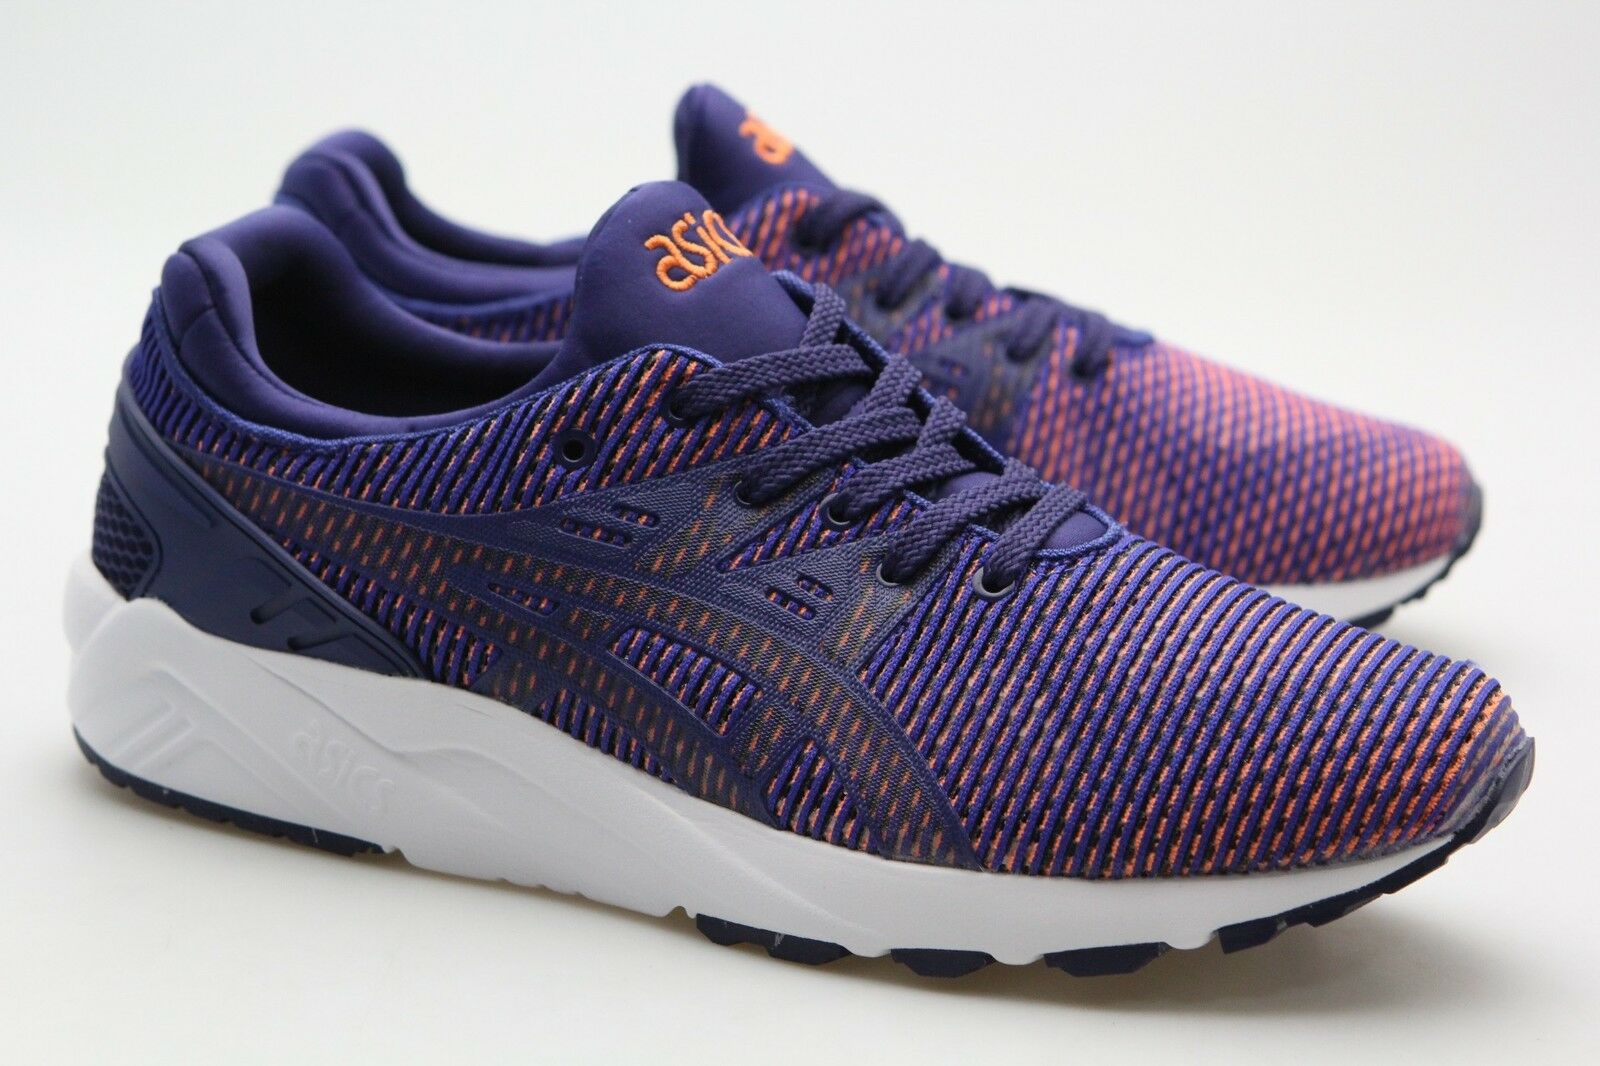 Asics Tiger Men Gel-Kayano Trainer Evo bluee bluee print orange HN6D0-5109